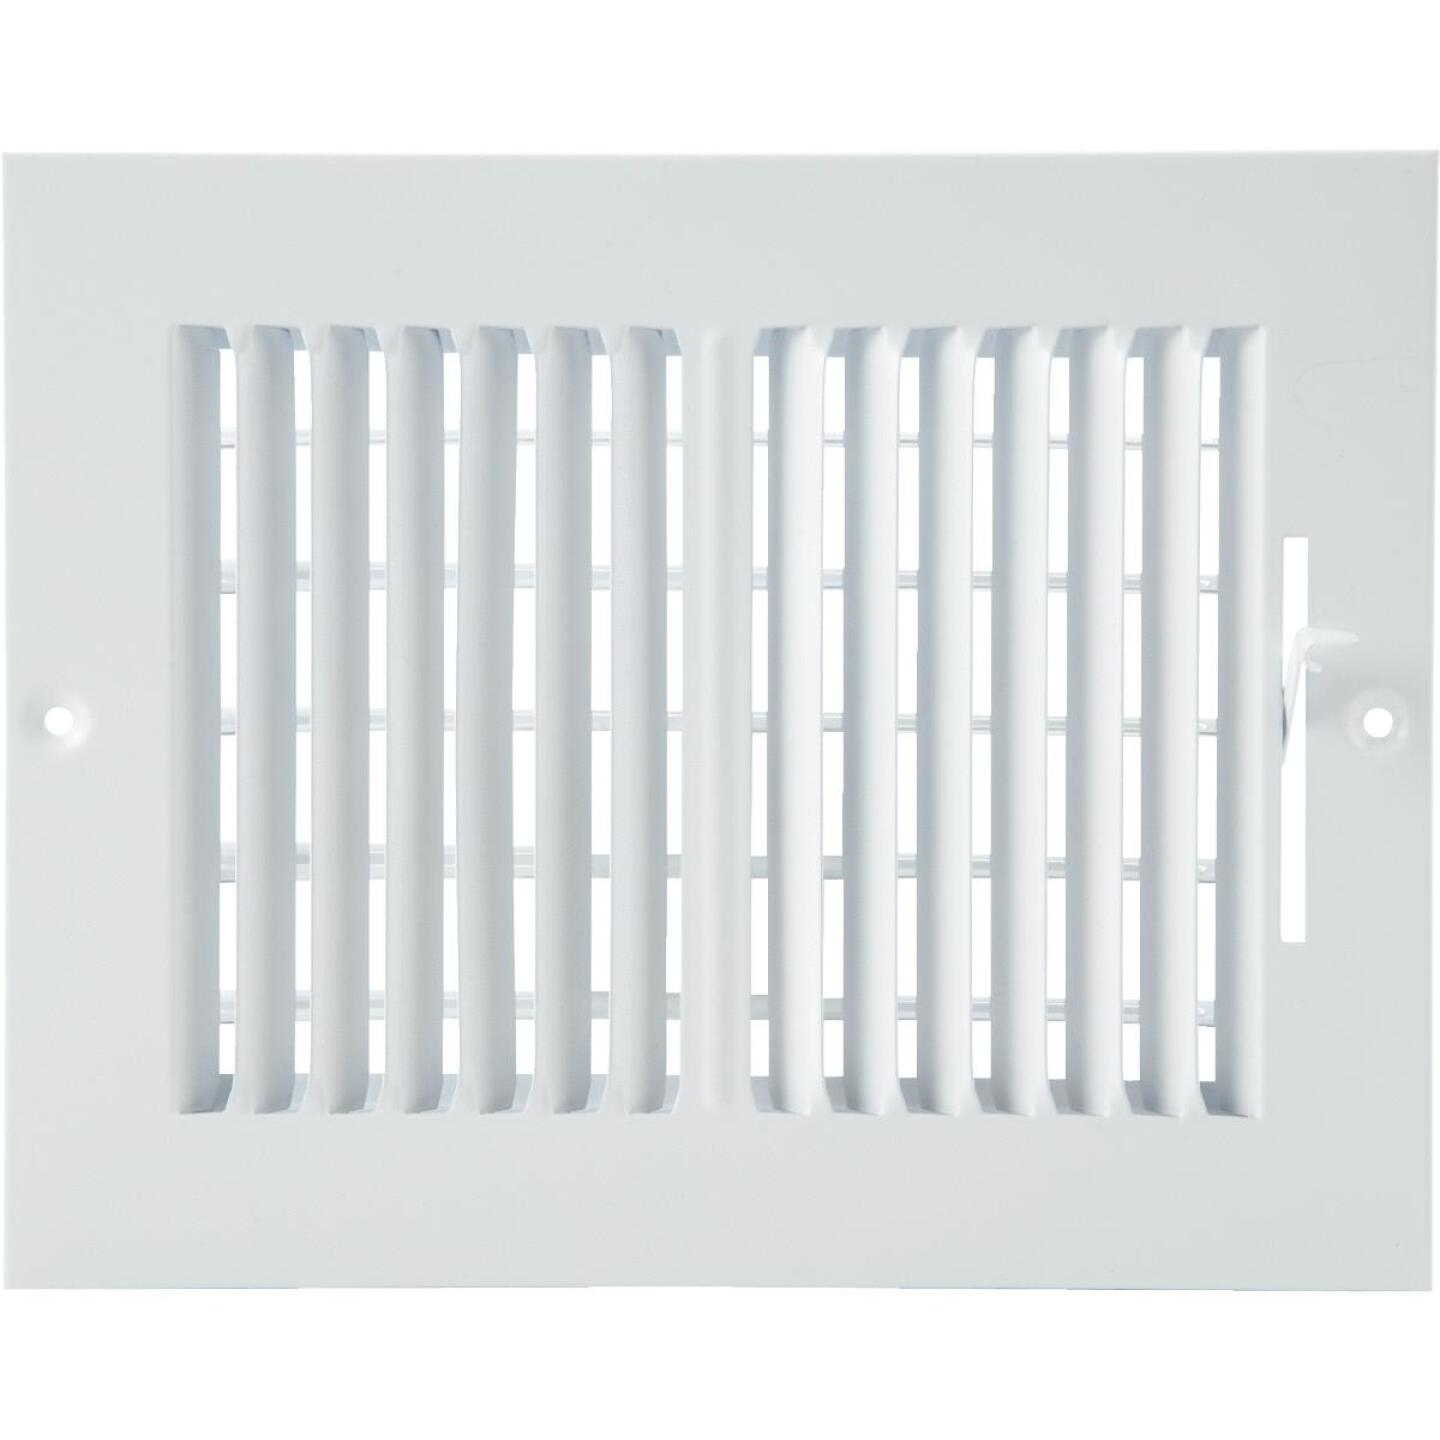 Home Impressions White Steel 7.76 In. Wall Register Image 2